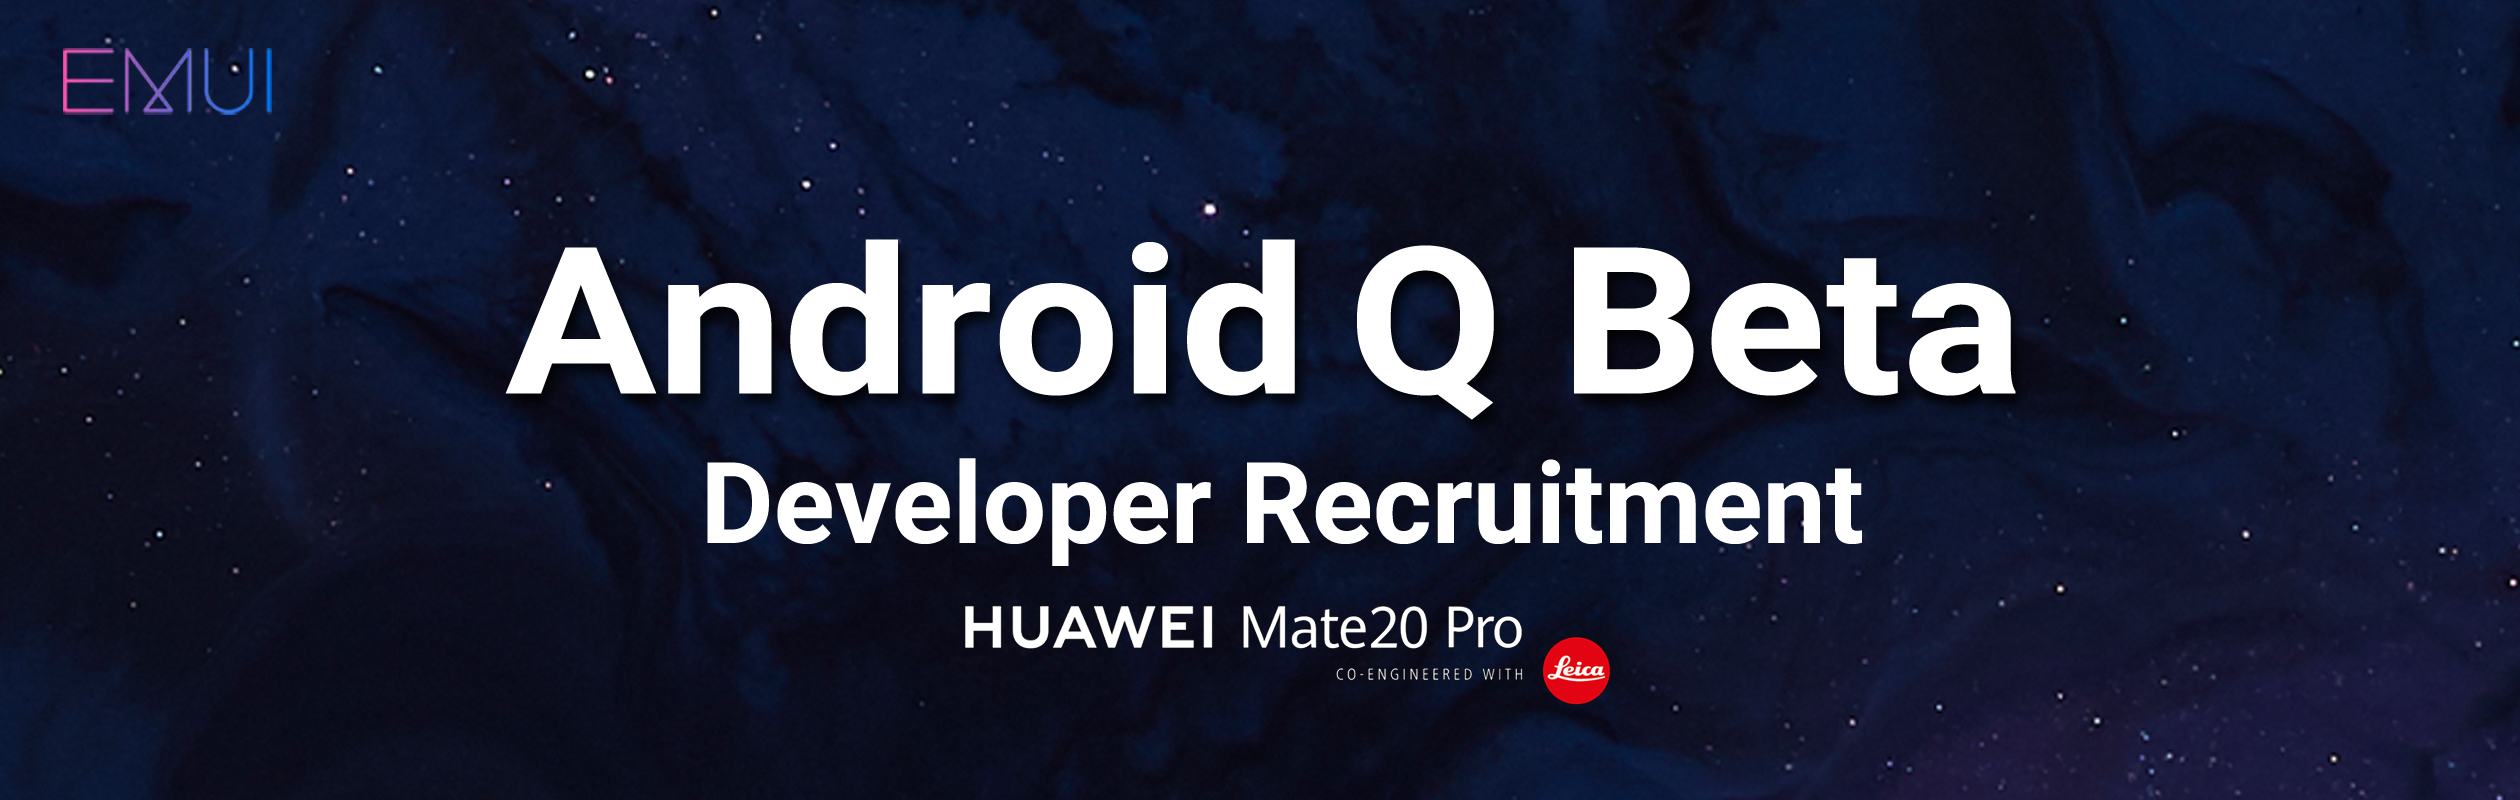 Huawei Mate 20 Pro update: Android Q beta available